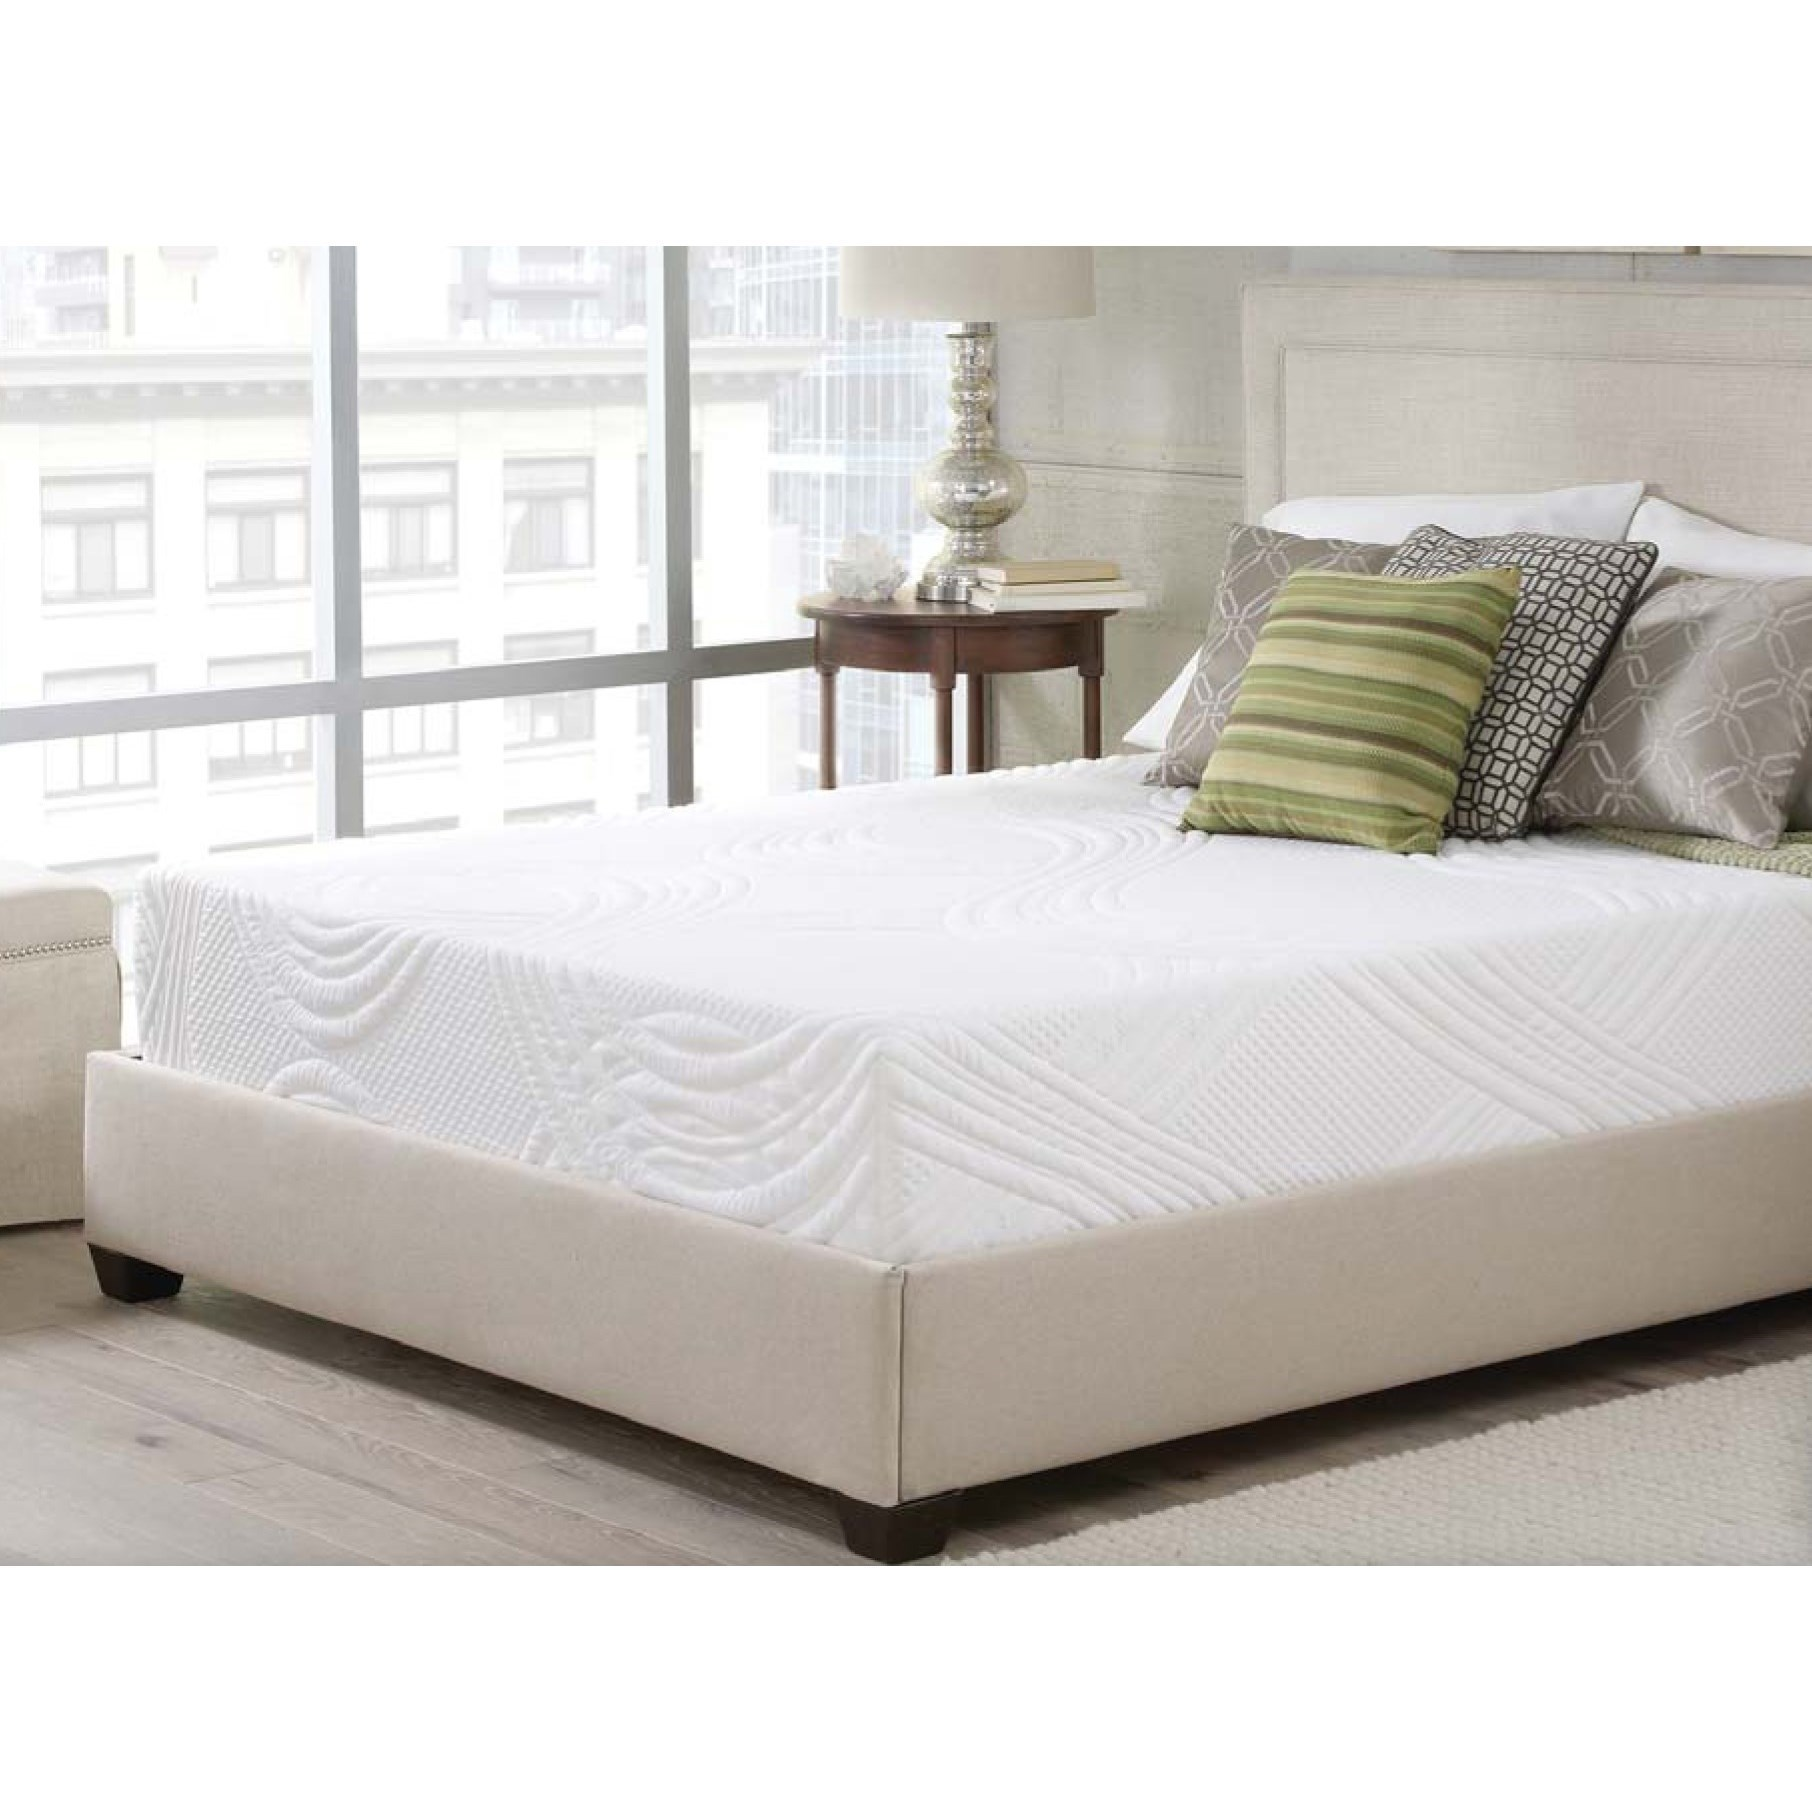 bed in a box mattress. Corsicana Luxen Bed In A Box Queen 10 Mattress Only Bed In A Box Mattress